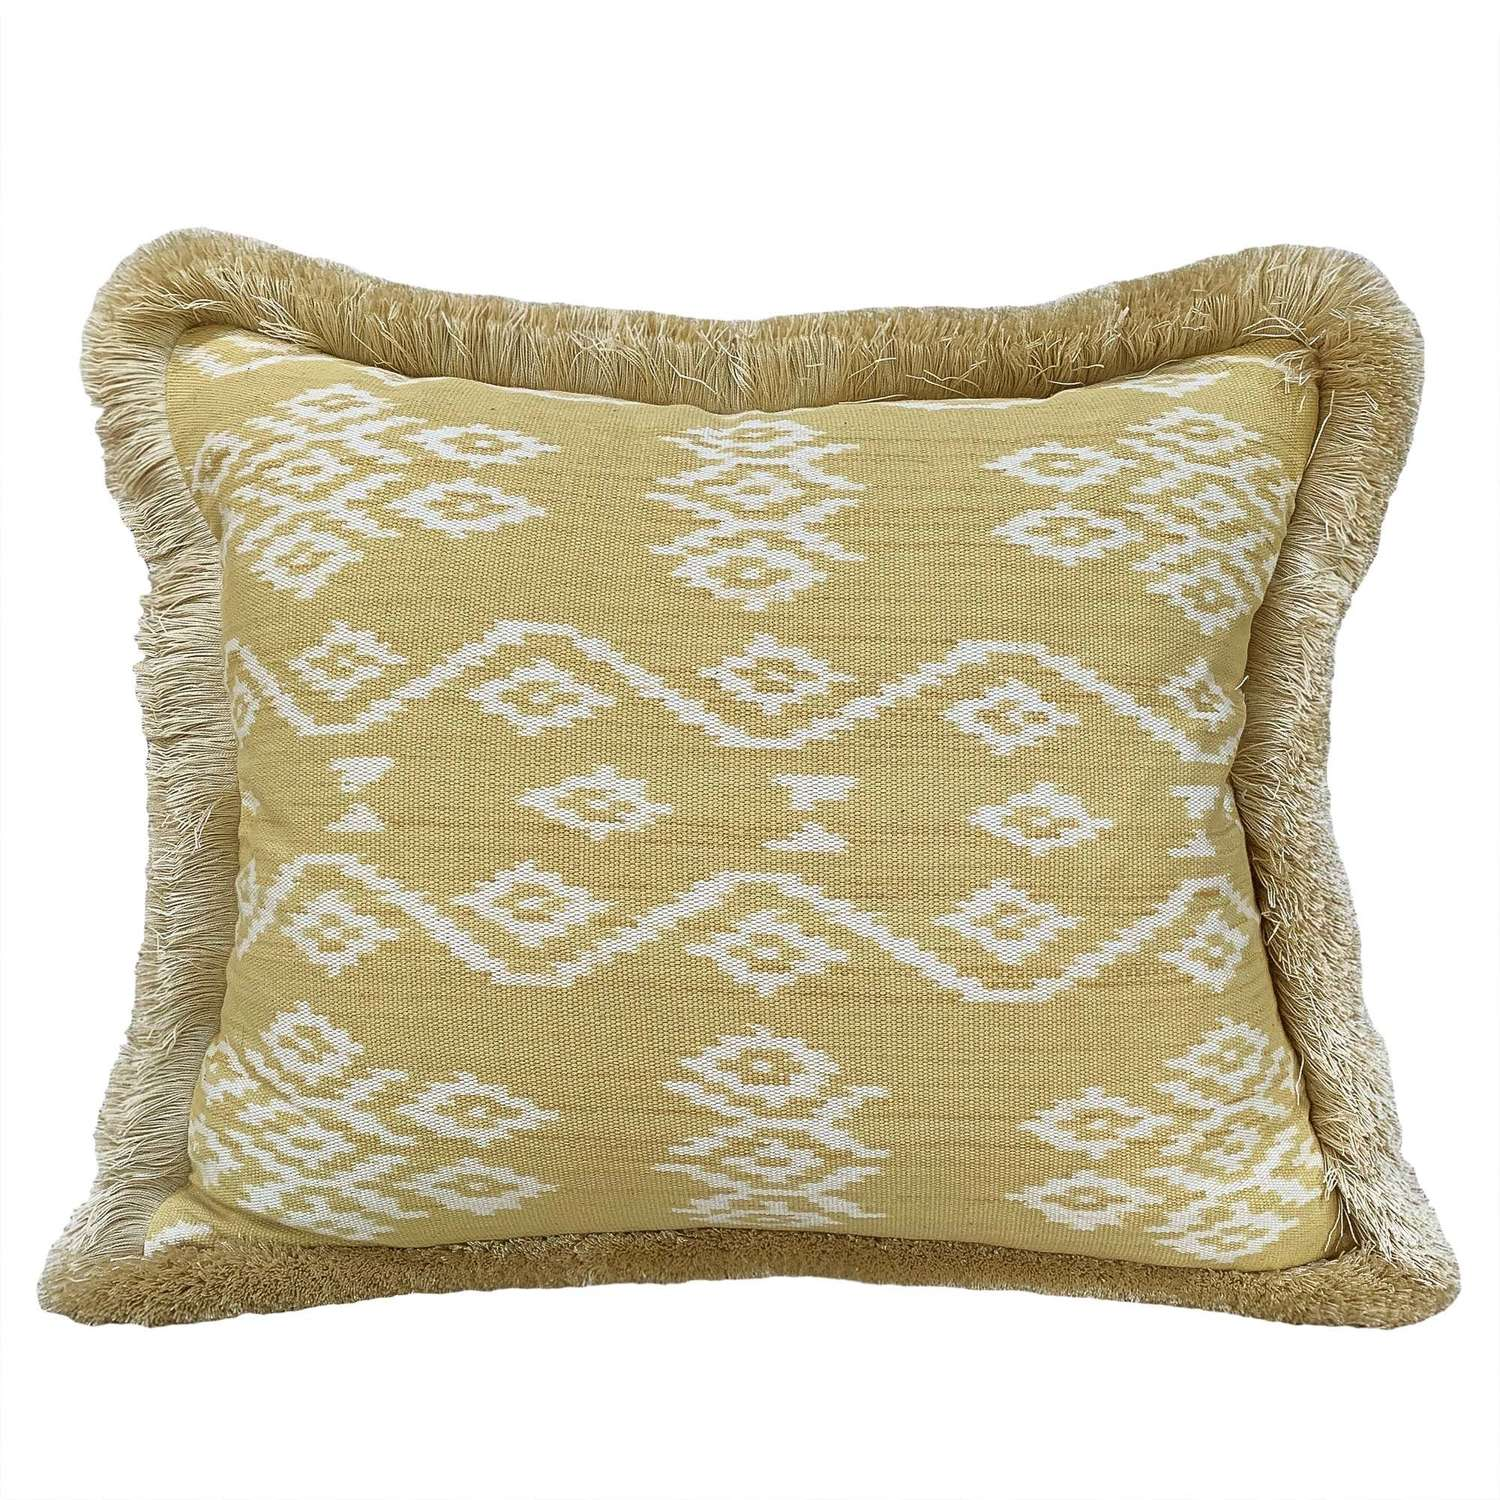 Rote ikat cushion with brush fringe